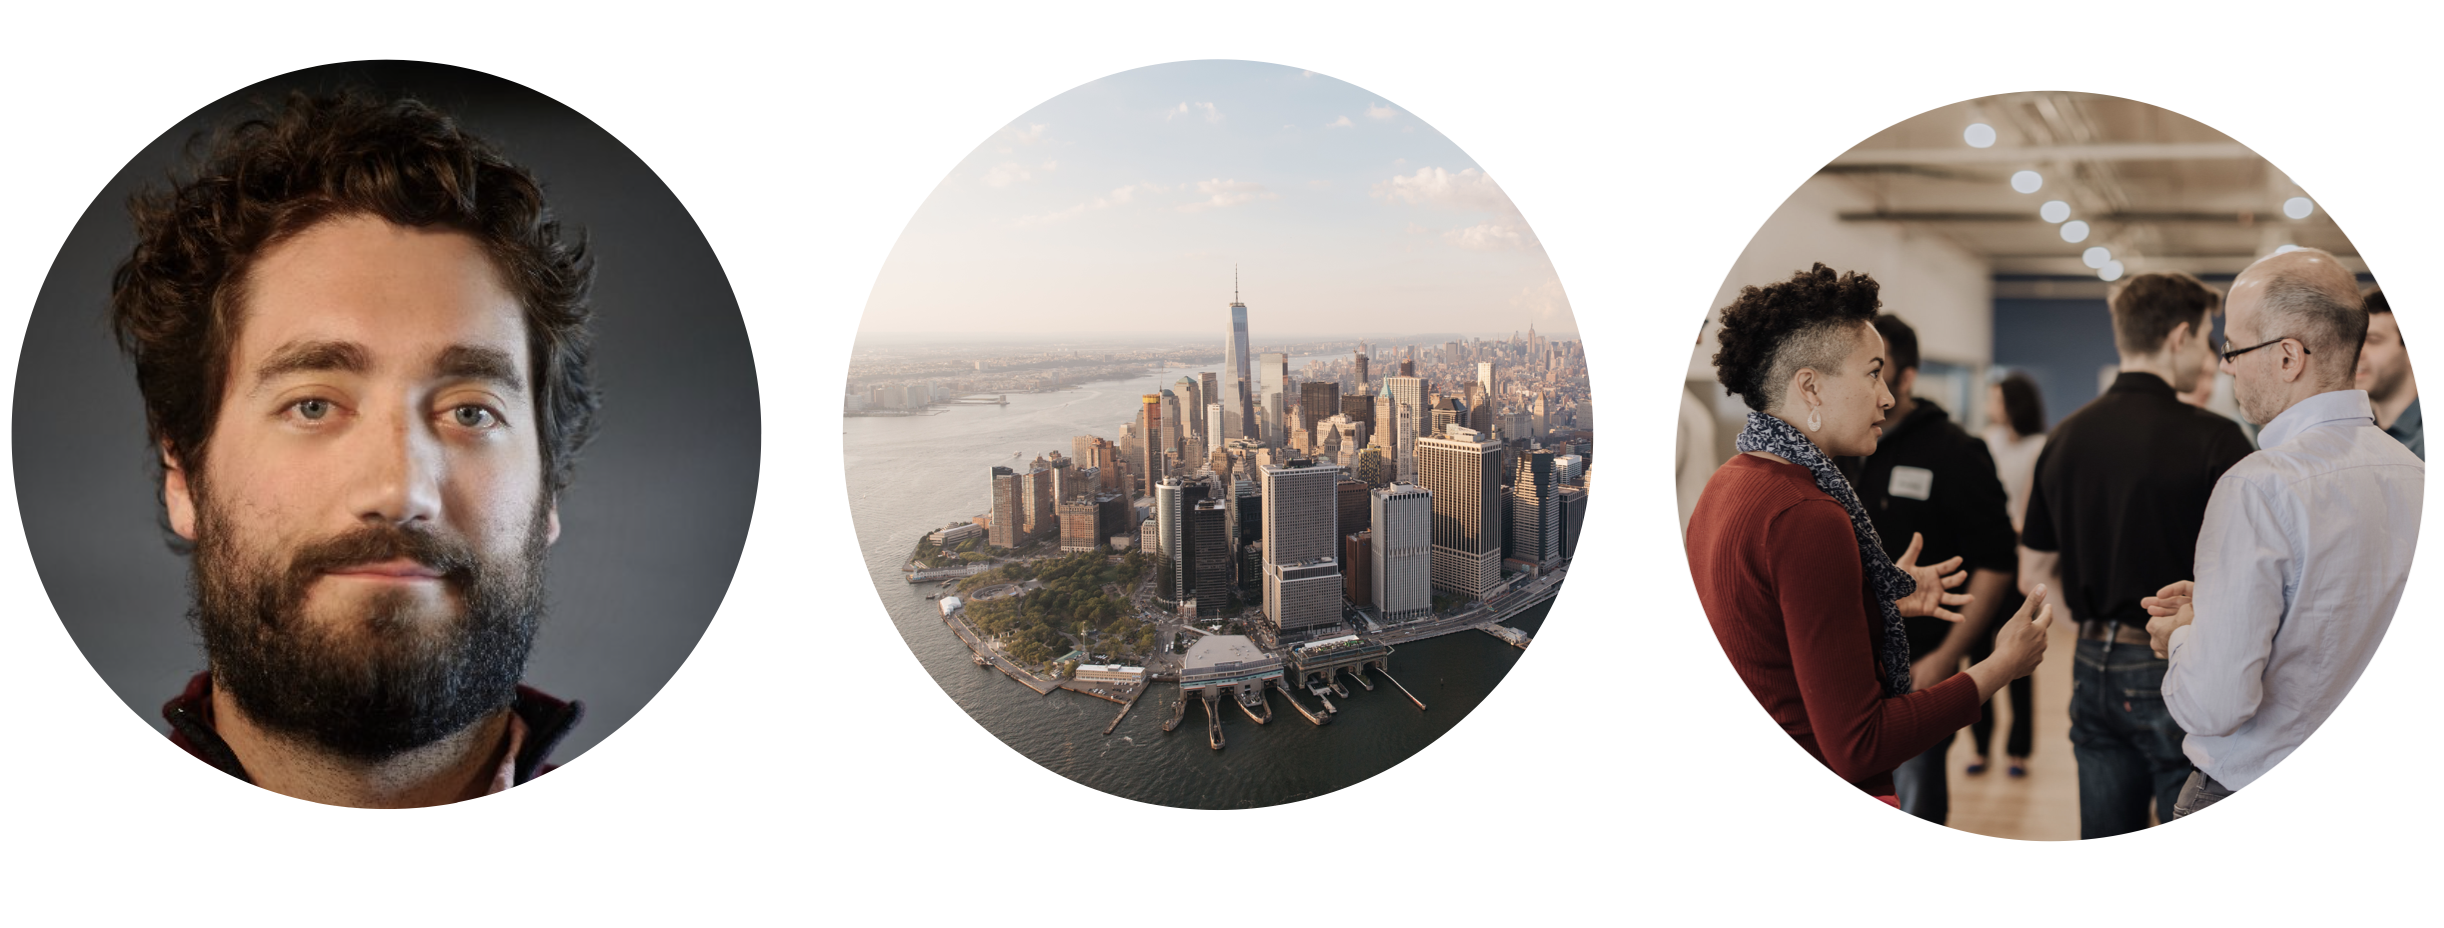 New York City: Data Science's Best Bet for Growth and